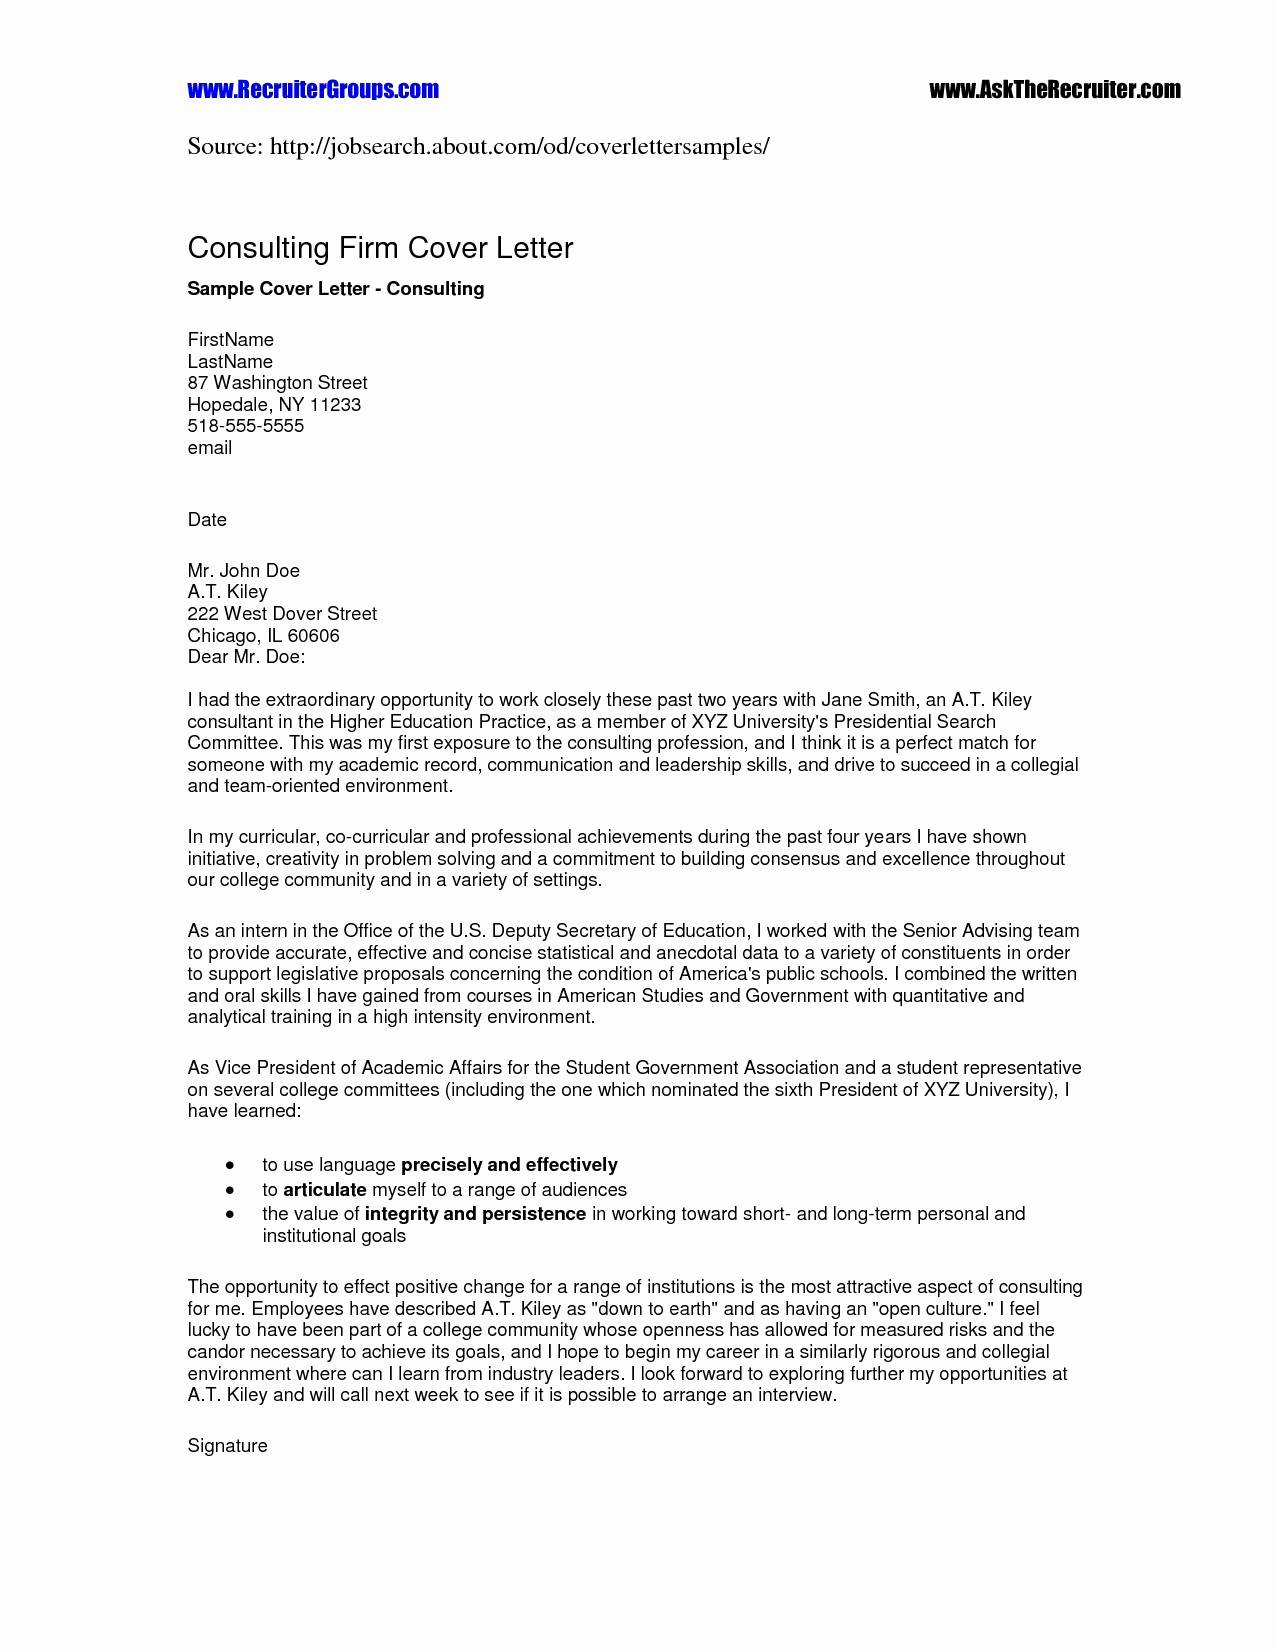 College Reference Letter Template - Certificate Good Moral Character Template Unique 30 Inspirational